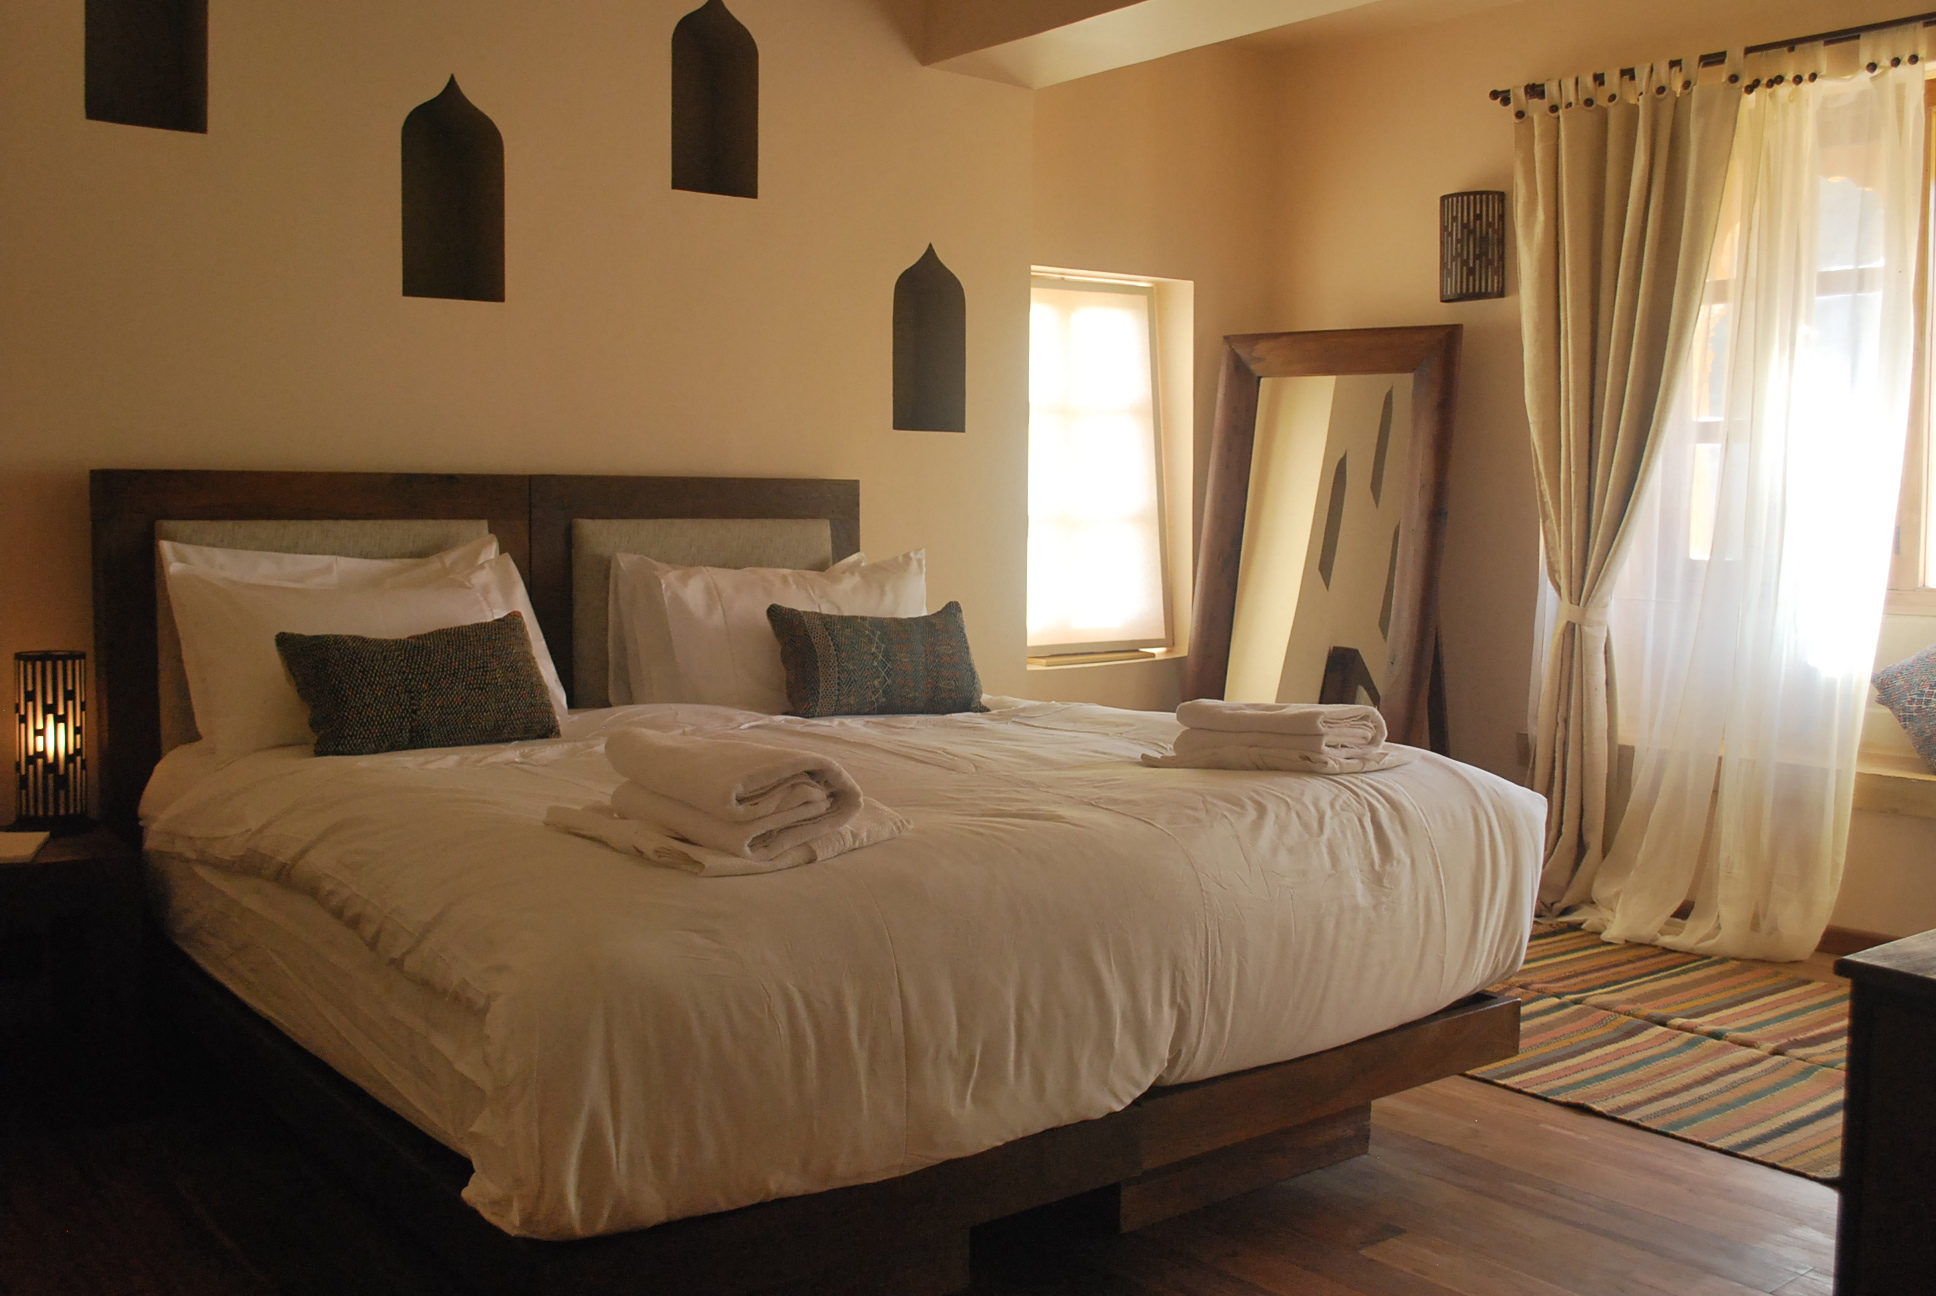 Deluxe Double Room, 1ST GATE HOME- FUSION JAISALMER - Budget Hotels in Jaisalmer